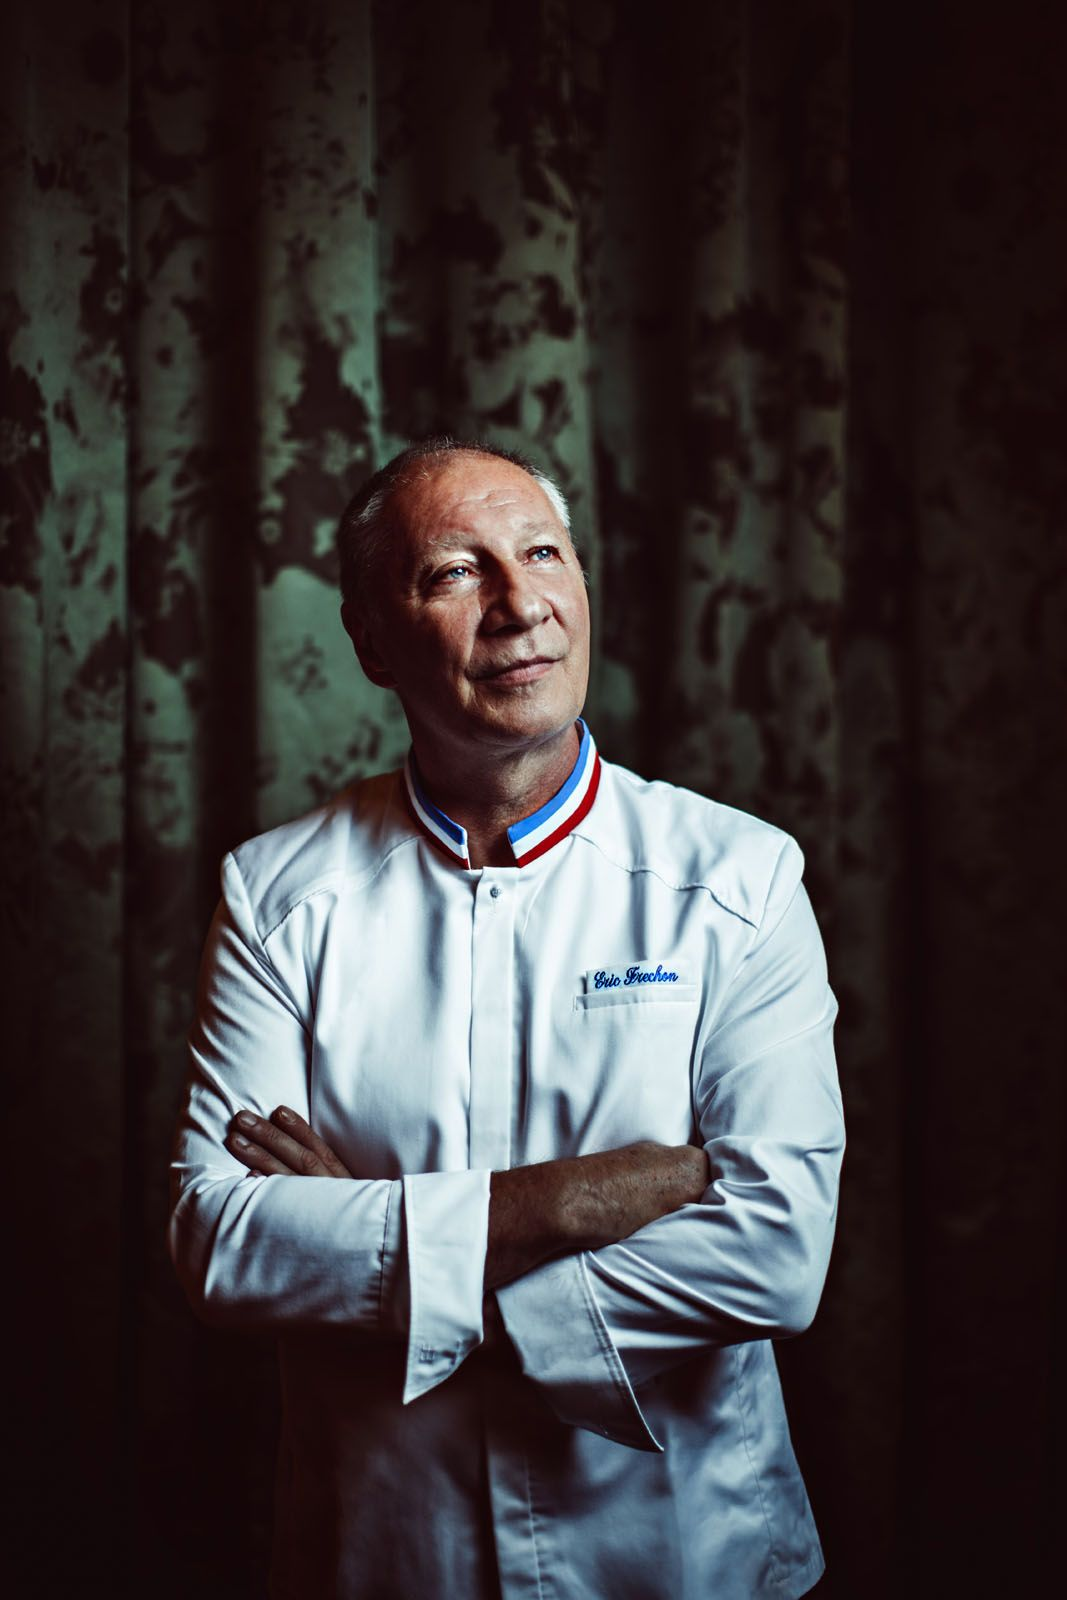 Le Bristol Paris' Chef Éric Fréchon Shares Simple Recipes to Try With Your Kids